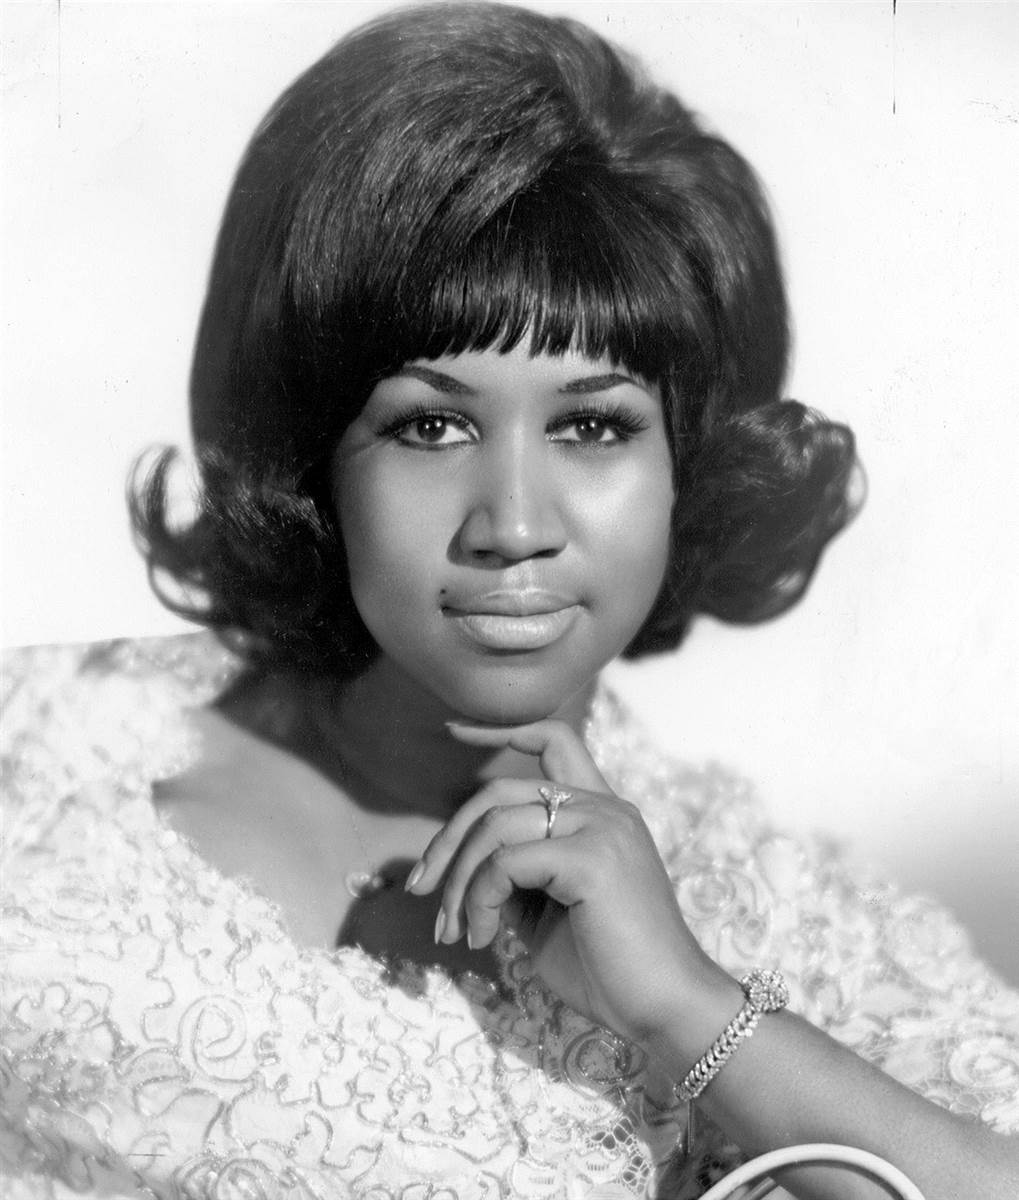 ss-101105-Aretha-Franklin-1960-portrait.today-ss-slide-desktop.jpg